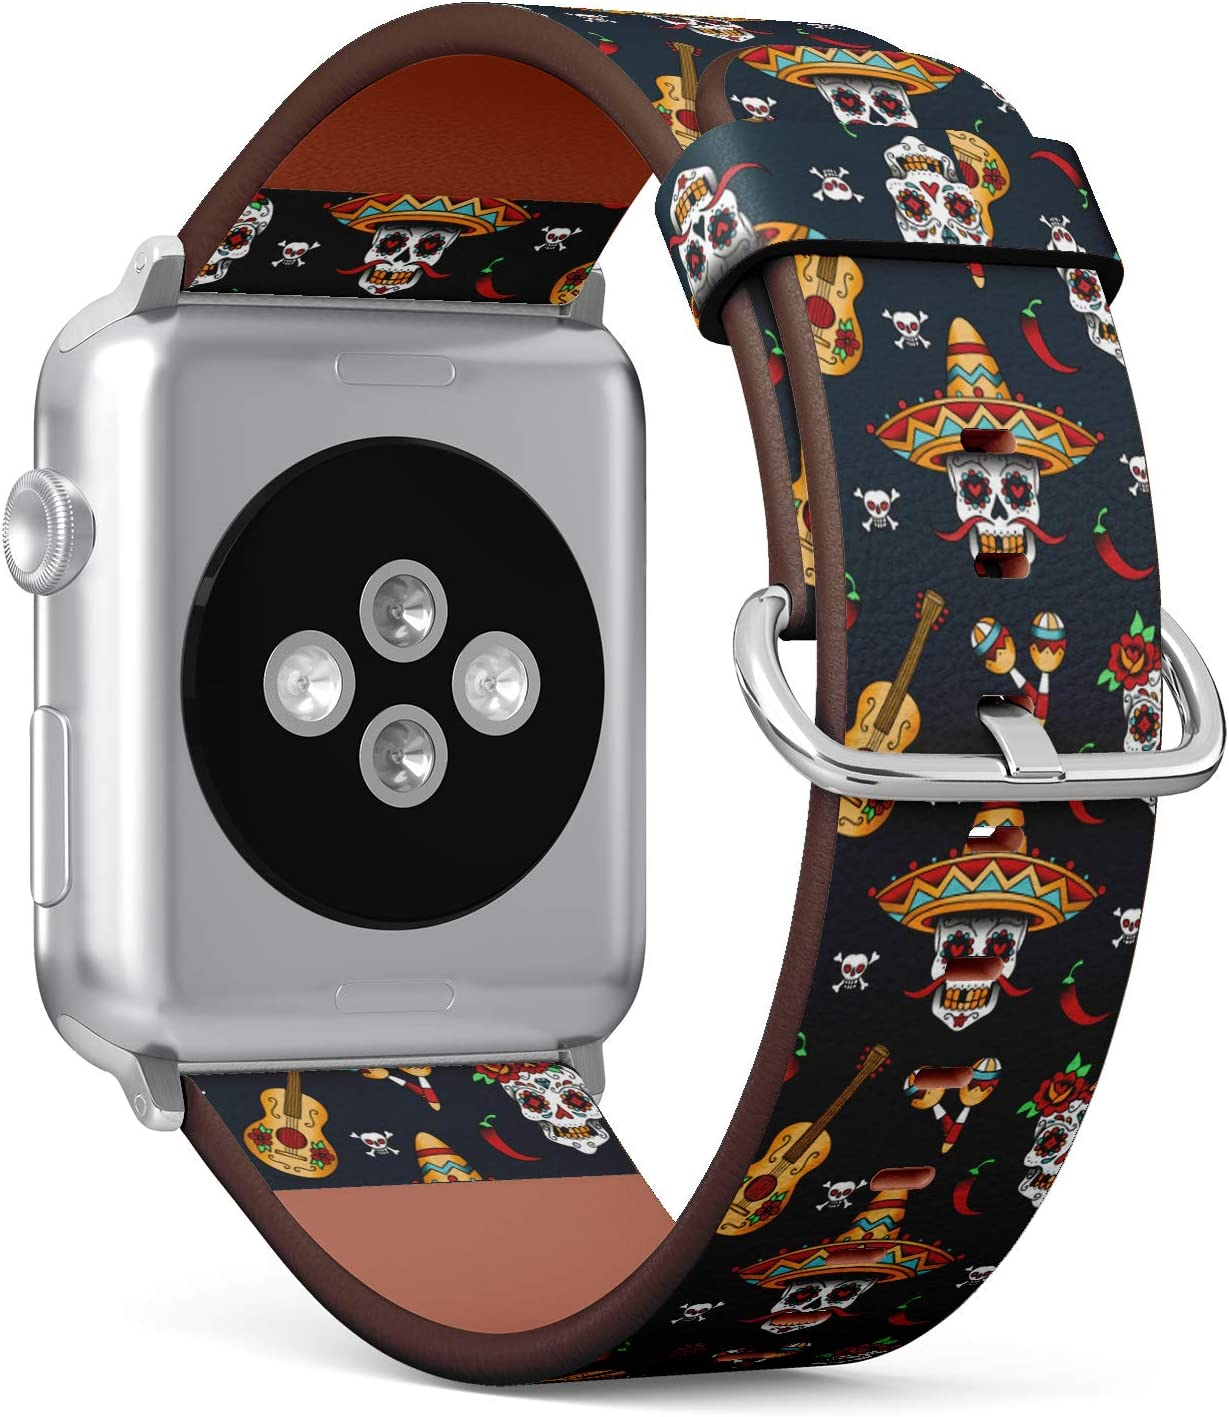 S-Type iWatch Leather Strap Printing Wristbands for Apple Watch 4/3/2/1 Sport Series (42mm) - Day of The Dead Pattern with Sugar Skull, Guitar and Pepper